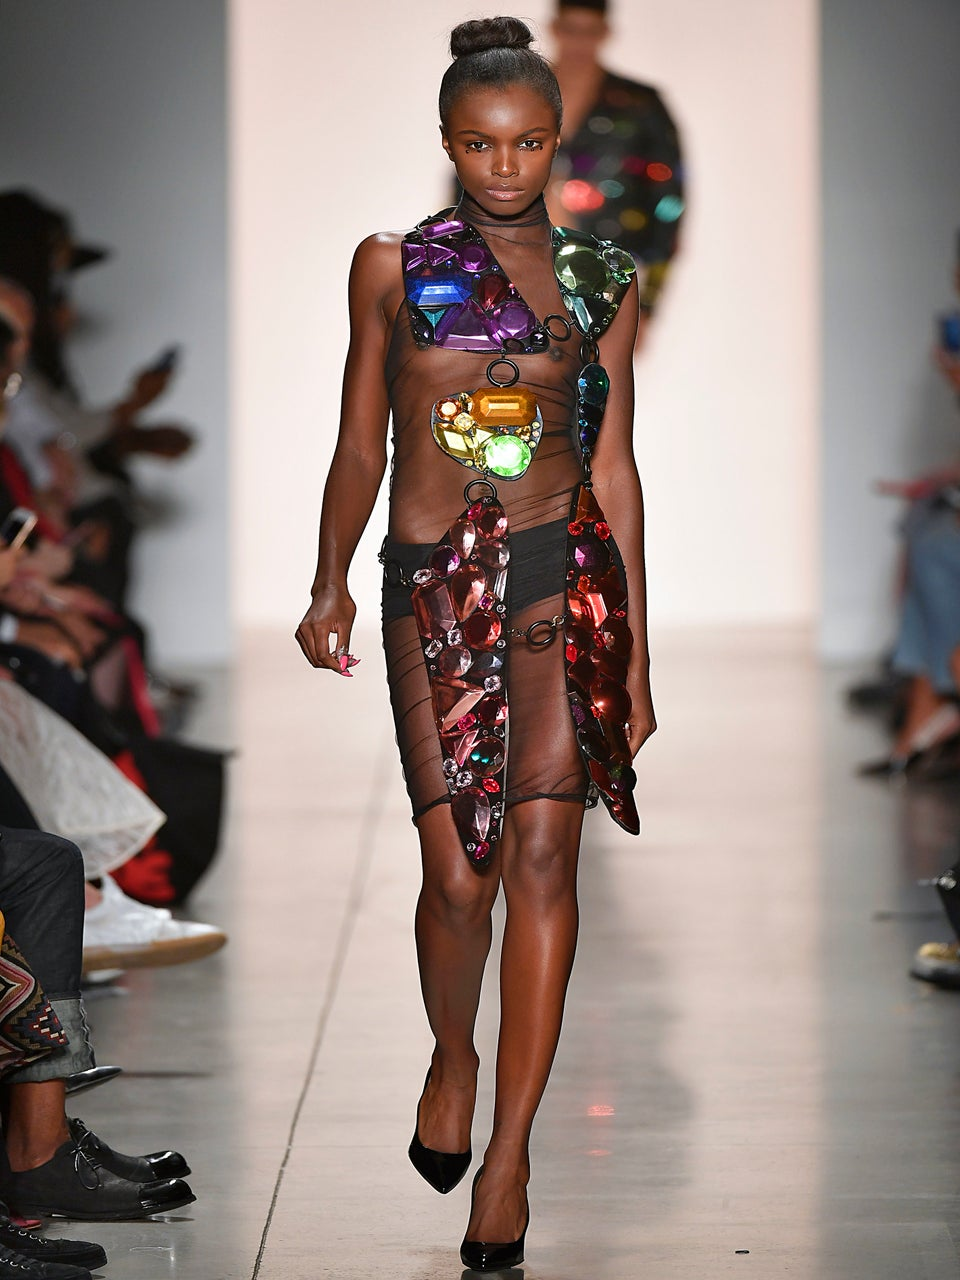 Model Leomie Anderson Allegedly Shunned From London Fashion Week Show Because Of Her Skin Color